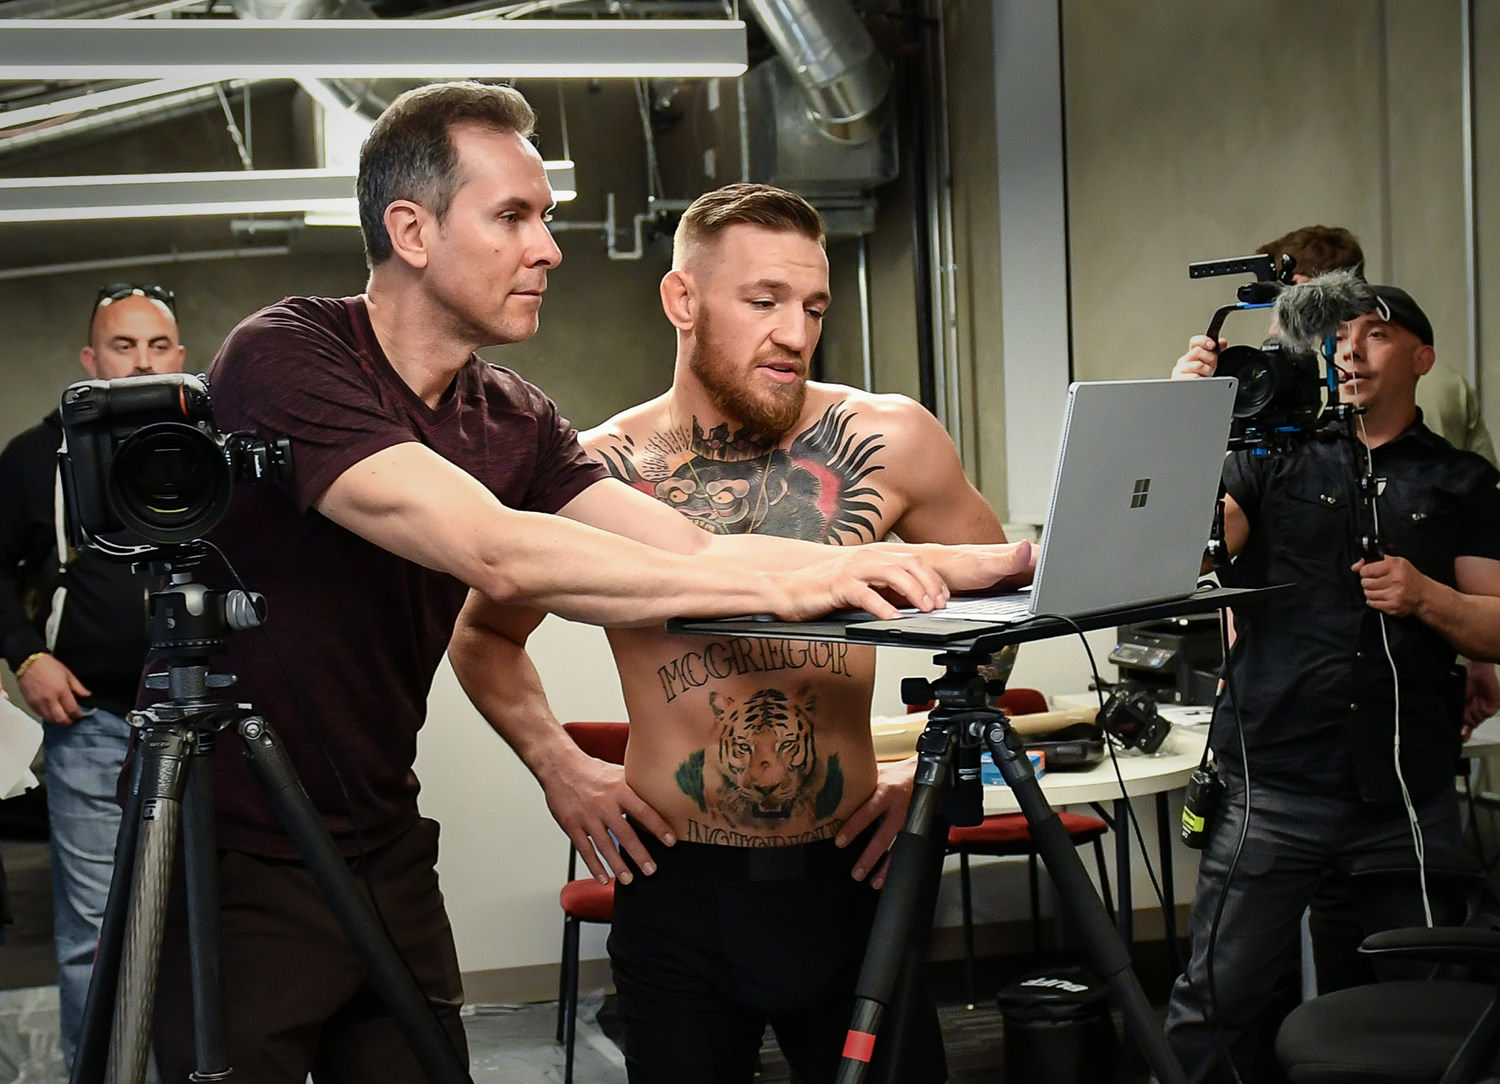 connor mcgregor bts 01.jpg